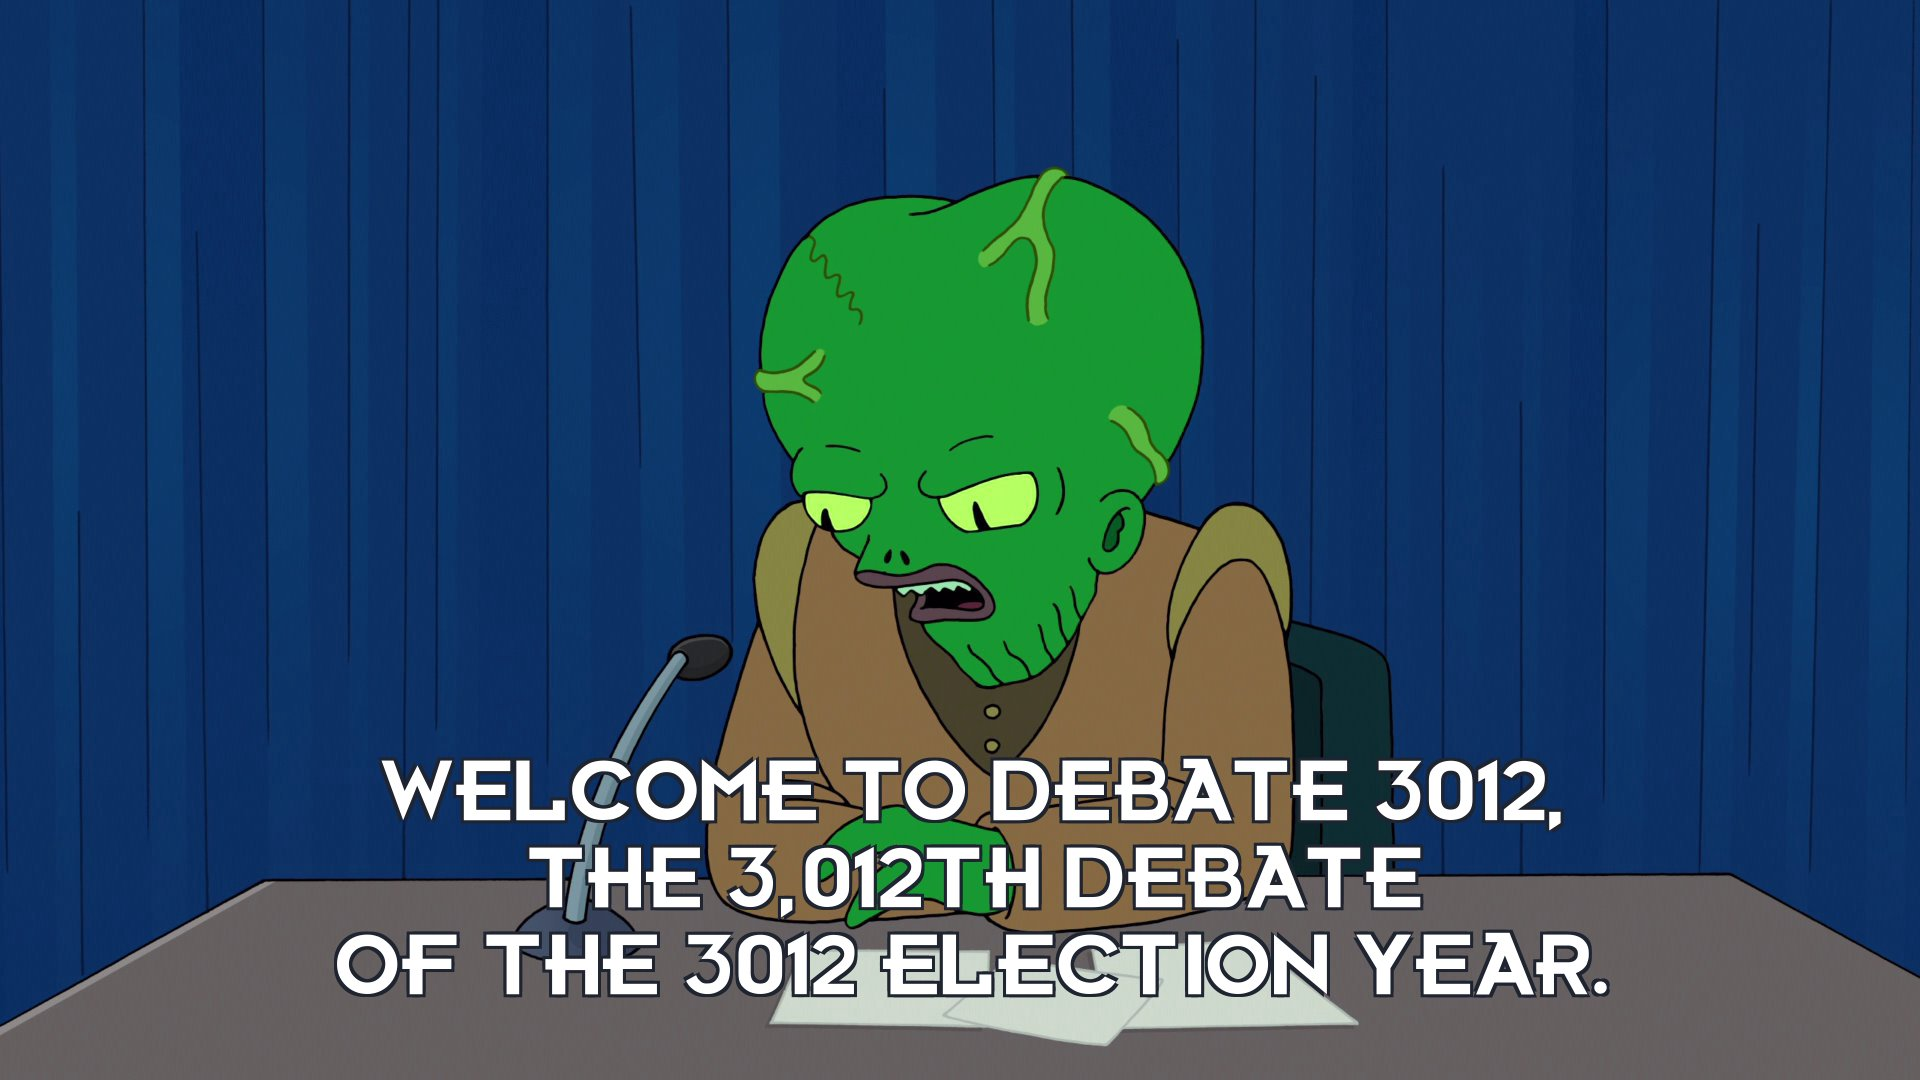 Morbo: Welcome to Debate 3012, the 3,012th debate of the 3012 election year.